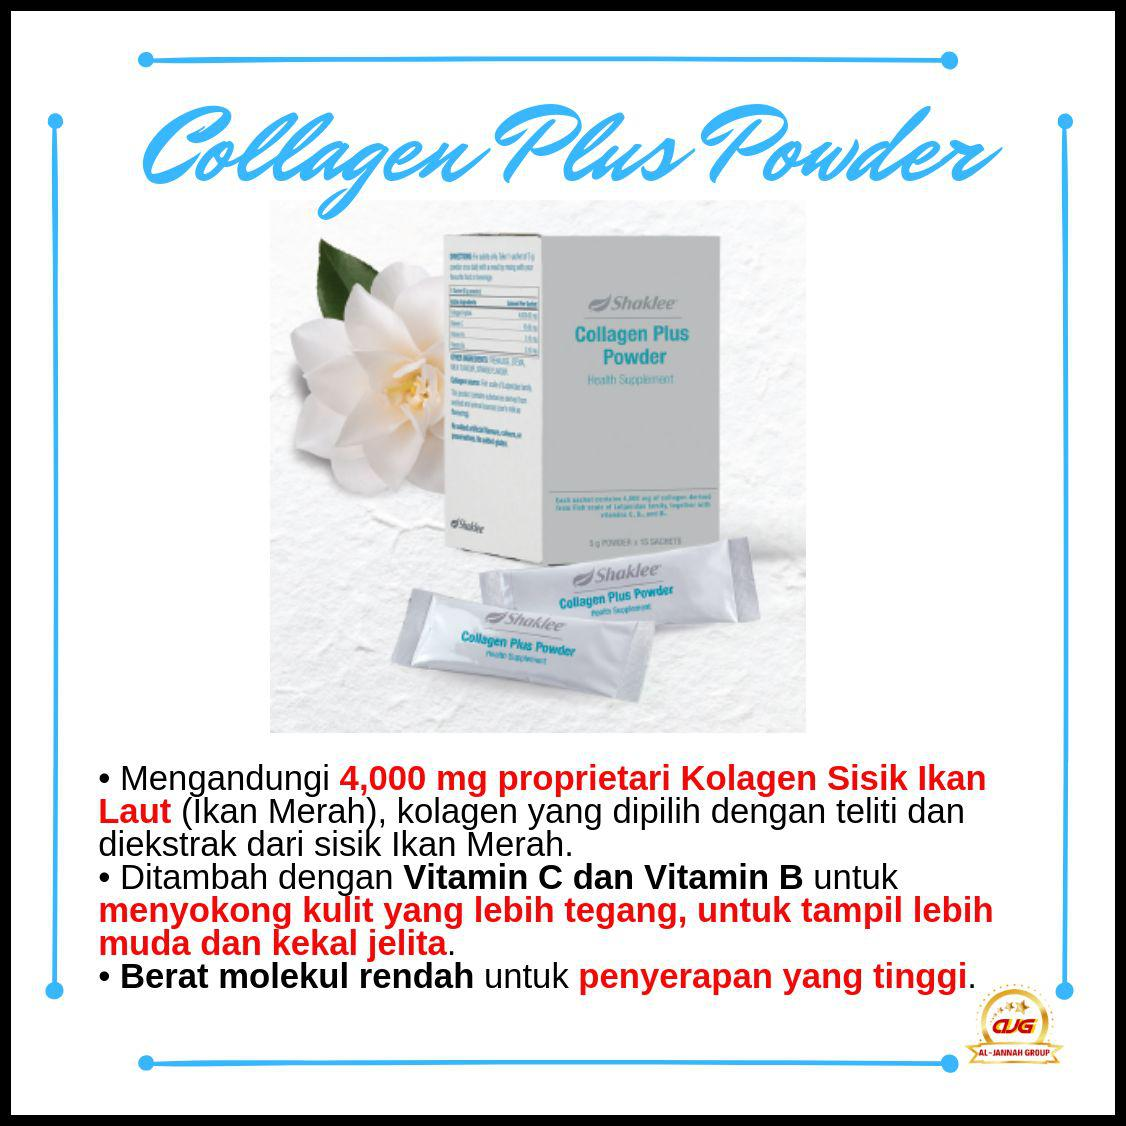 shaklee collagen plus powder beza dengan kolagen lain